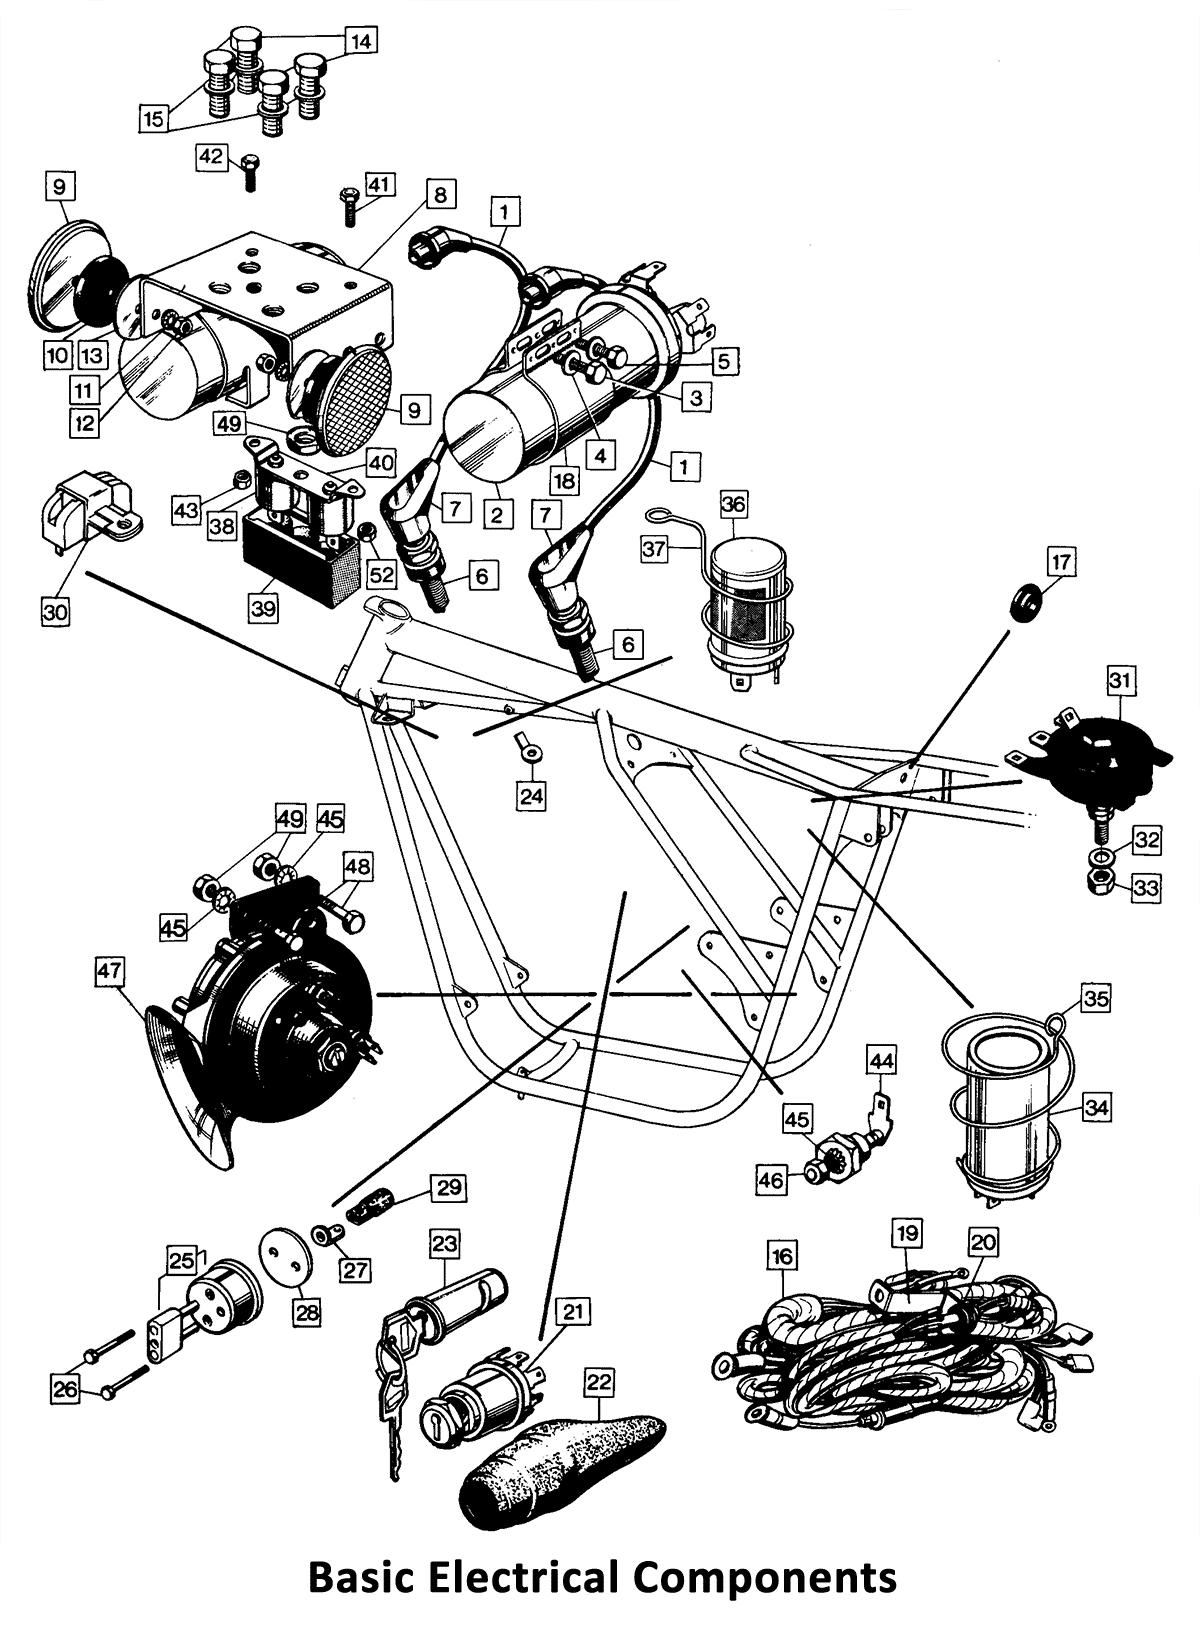 1973-74 Norton Commando 750 & 850 Basic Electrical Components